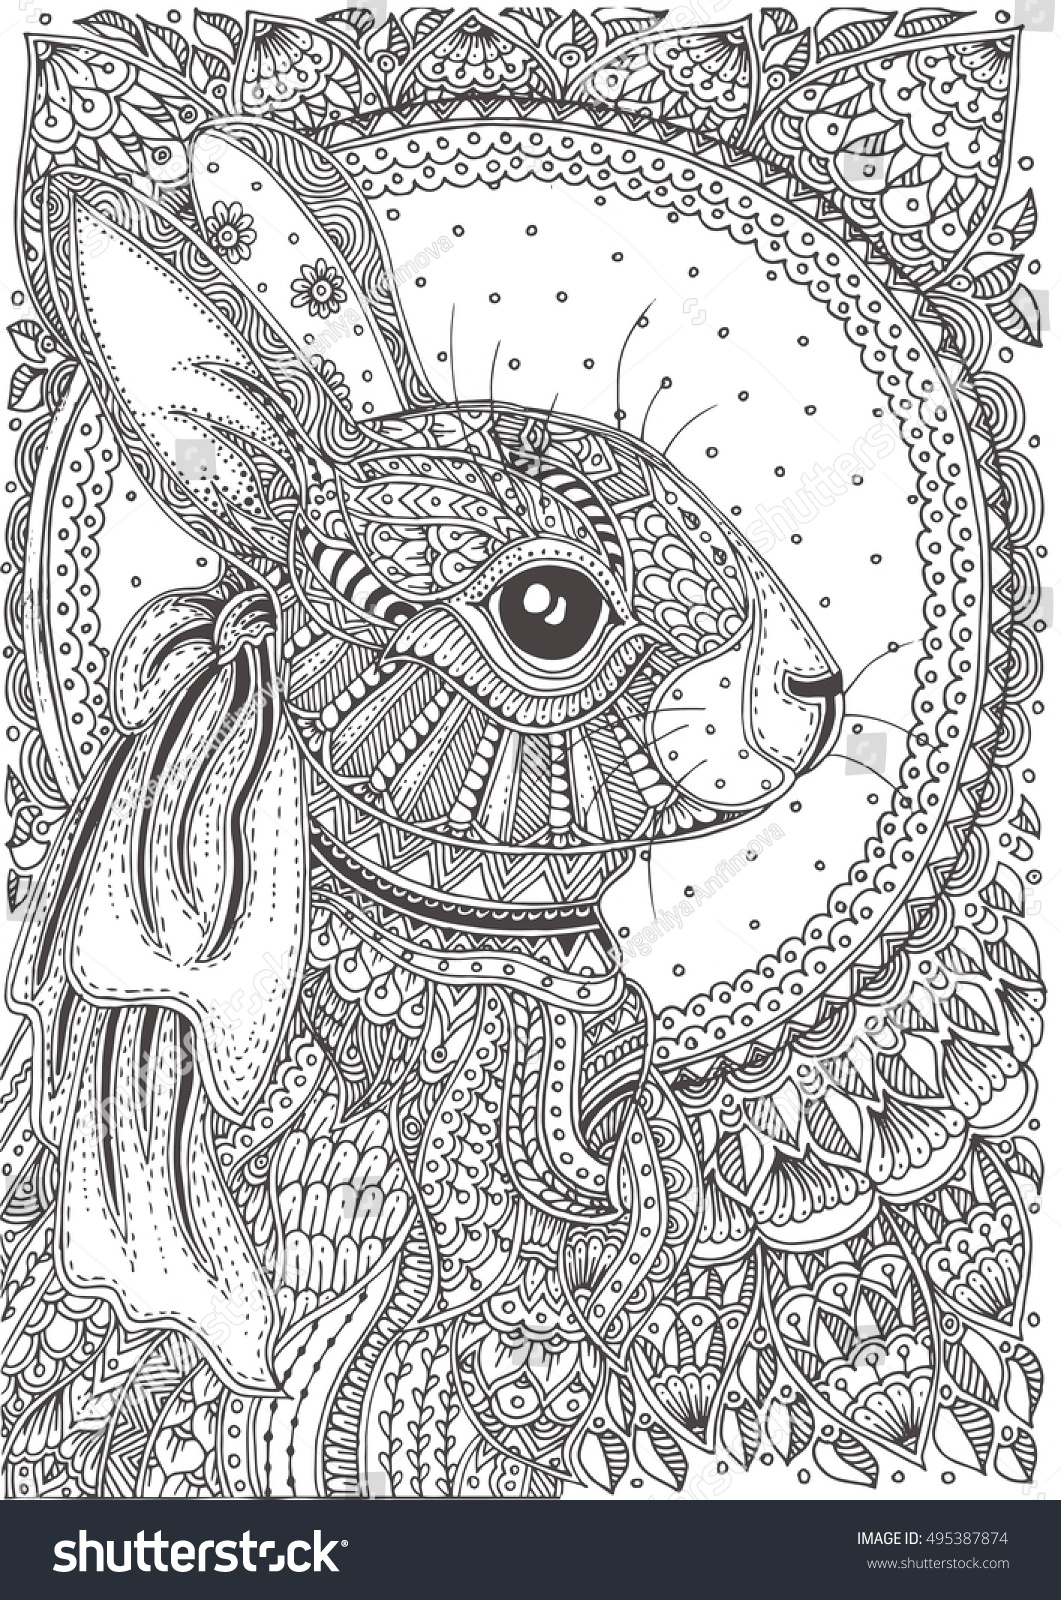 Easter bunny drawing free coloring pages on art coloring pages - Handdrawn Rabbit Ethnic Floral Doodle Pattern Stock Vector